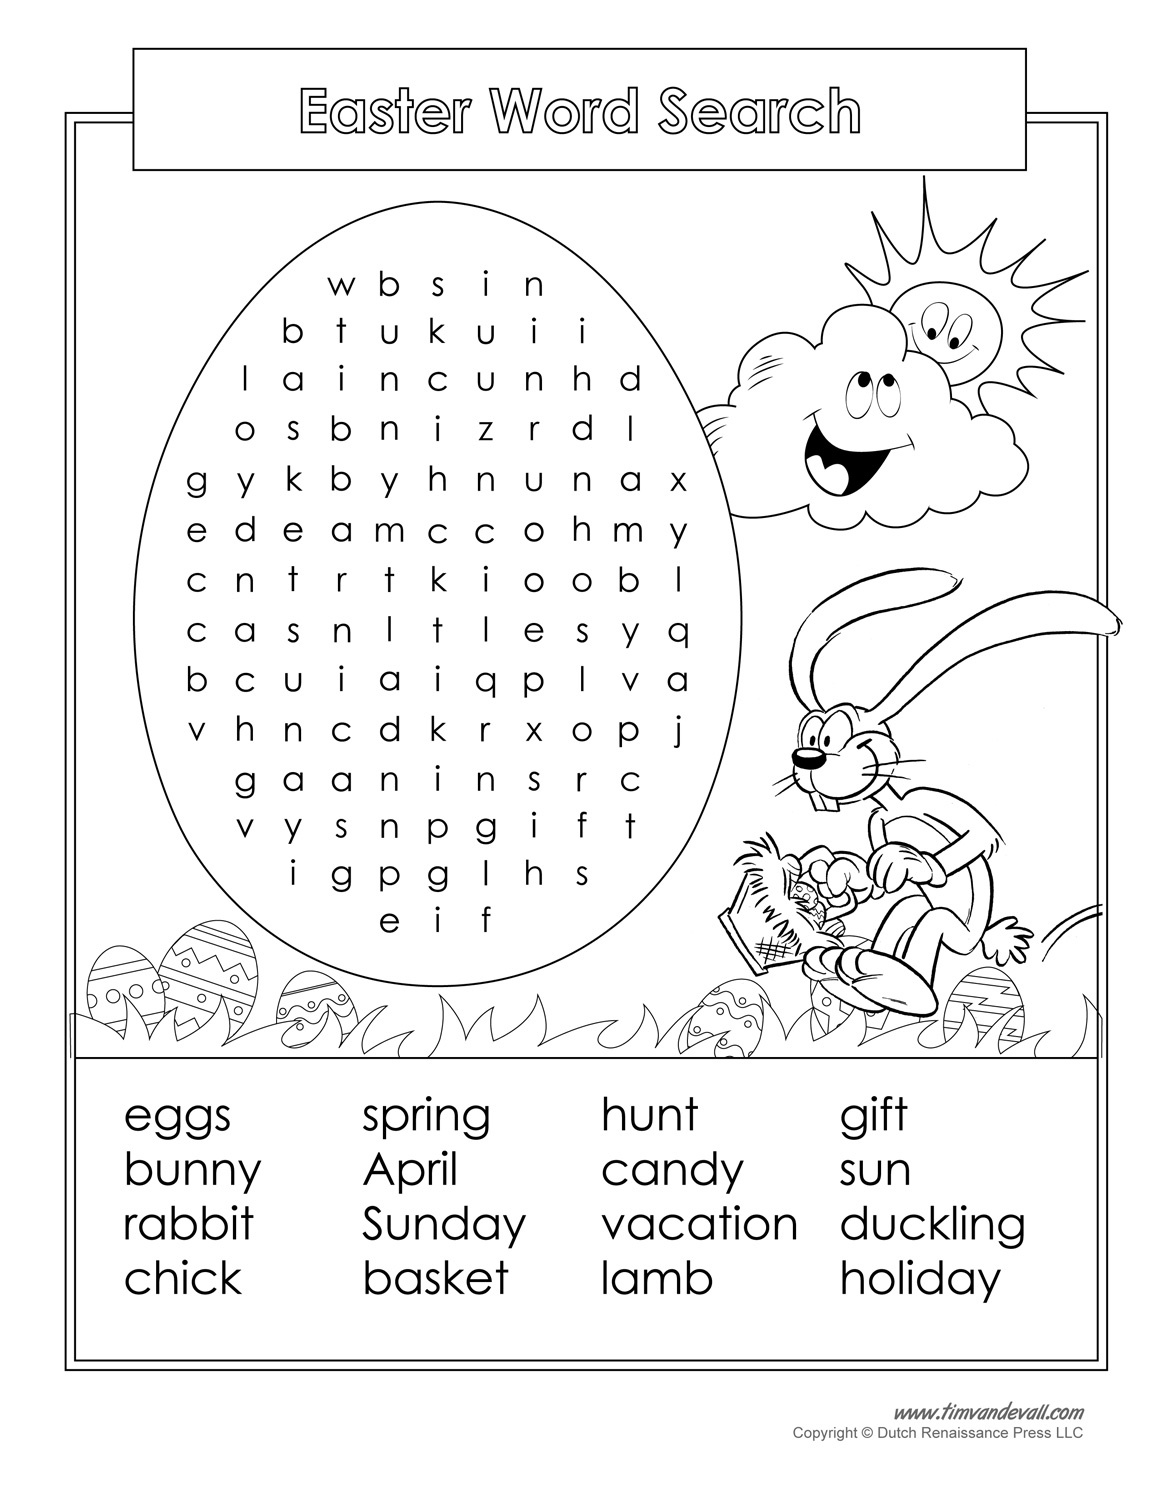 16 Printable Easter Word Search Puzzles | Kittybabylove - Free Printable Easter Puzzles For Adults